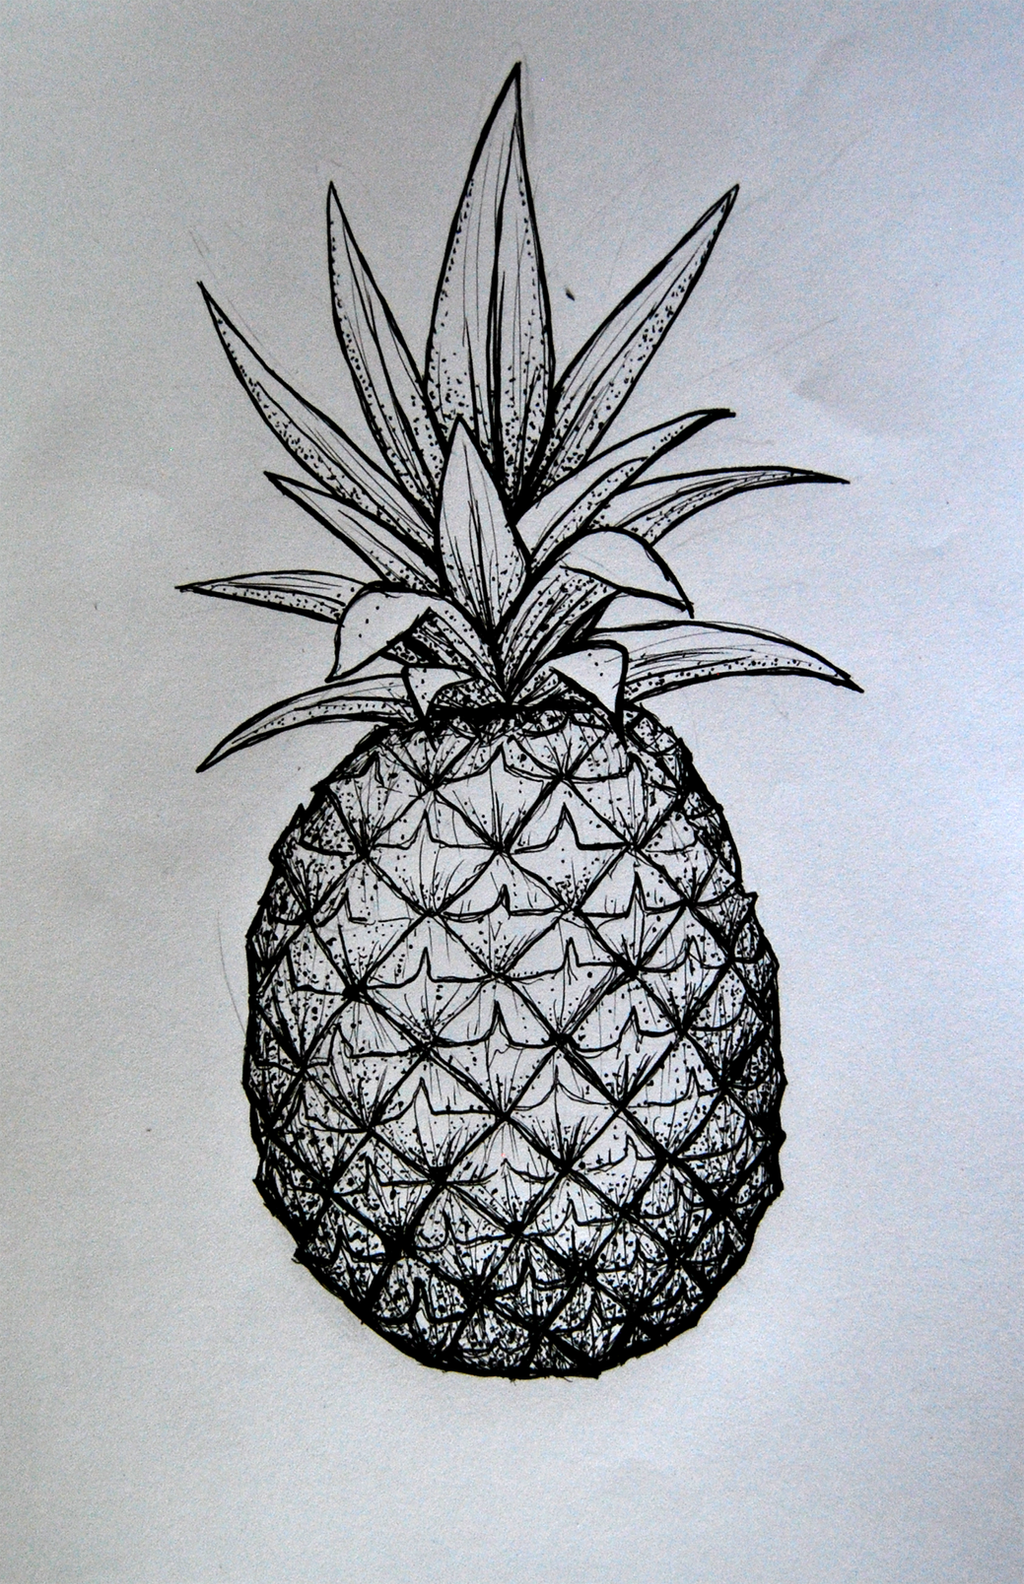 pineapple tattoo by herzlose on deviantart. Black Bedroom Furniture Sets. Home Design Ideas